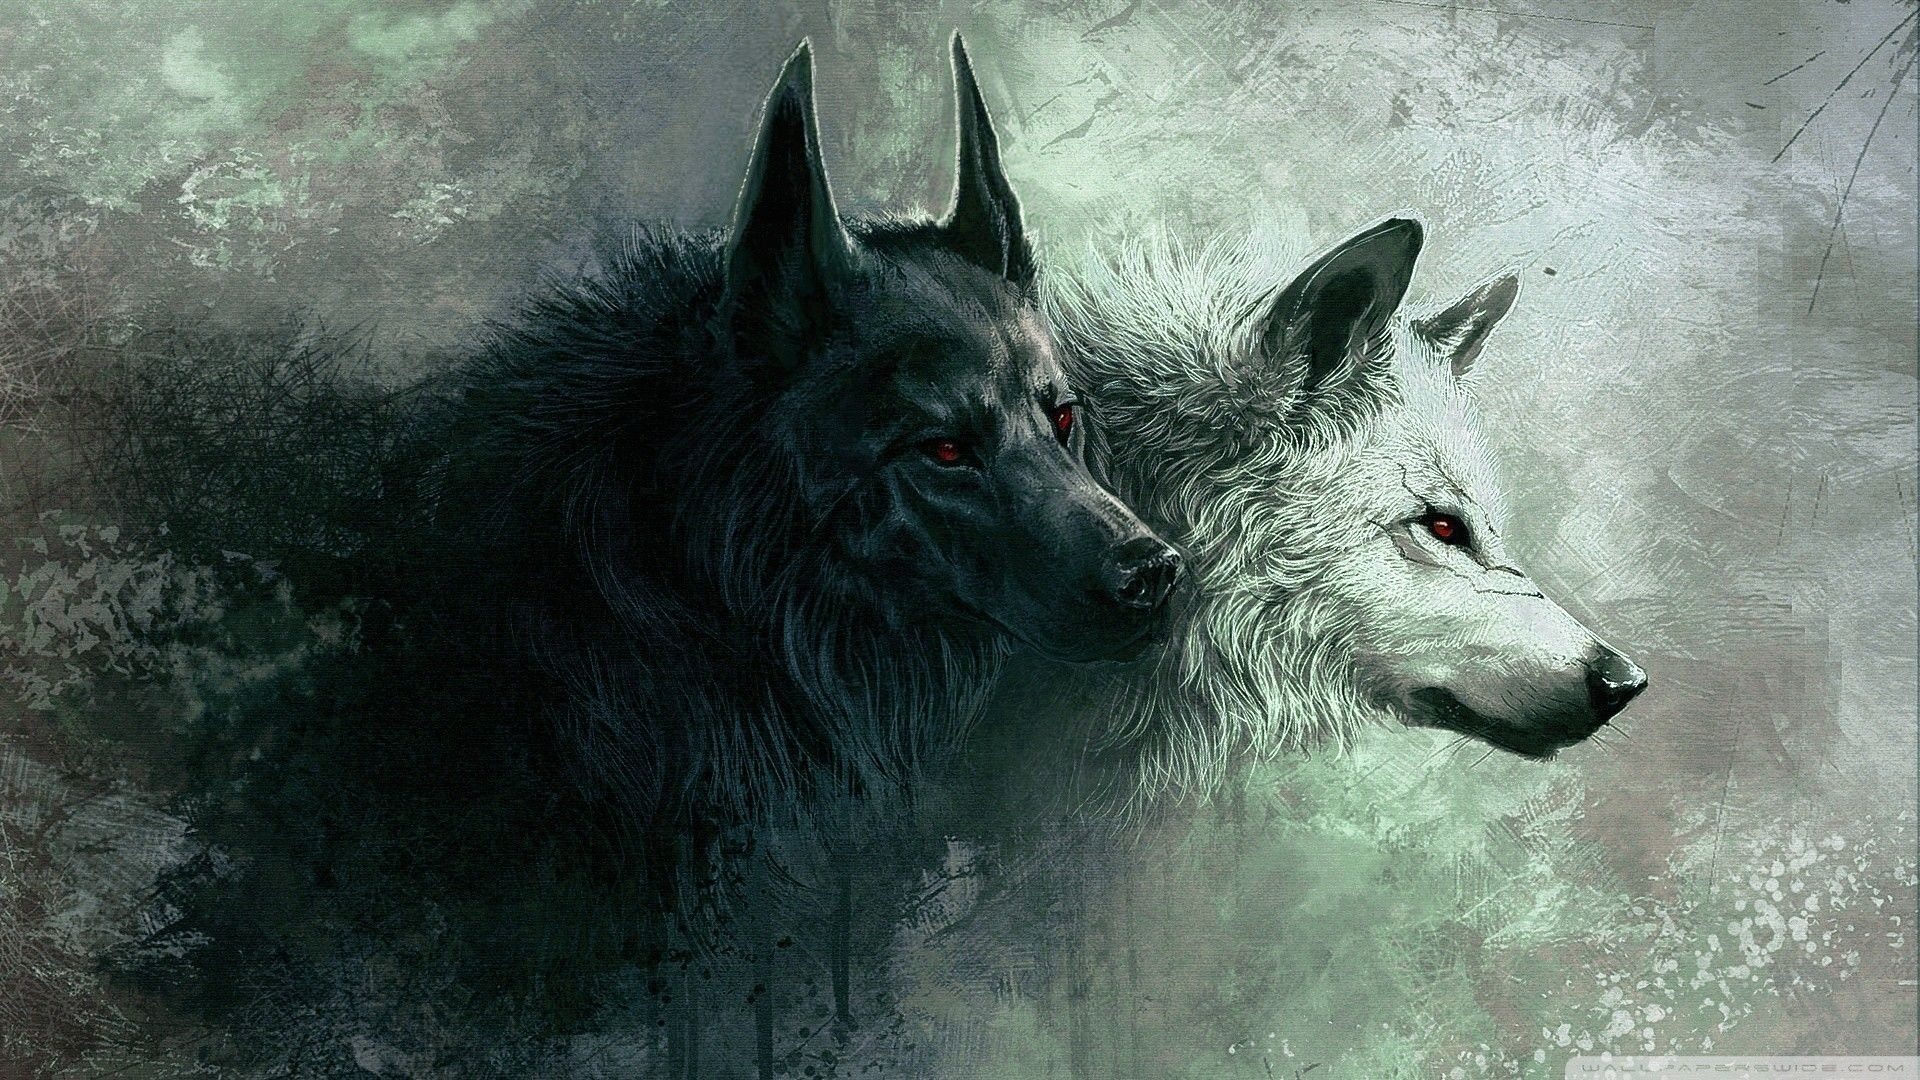 Lone Wolf Wallpaper 1280a 1024 Lone Wolf Wallpapers 38 Wallpapers Adorable Wallpapers Desktop Pinterest Wol Wolf Wallpaper Wolf Artwork Fantasy Wolf